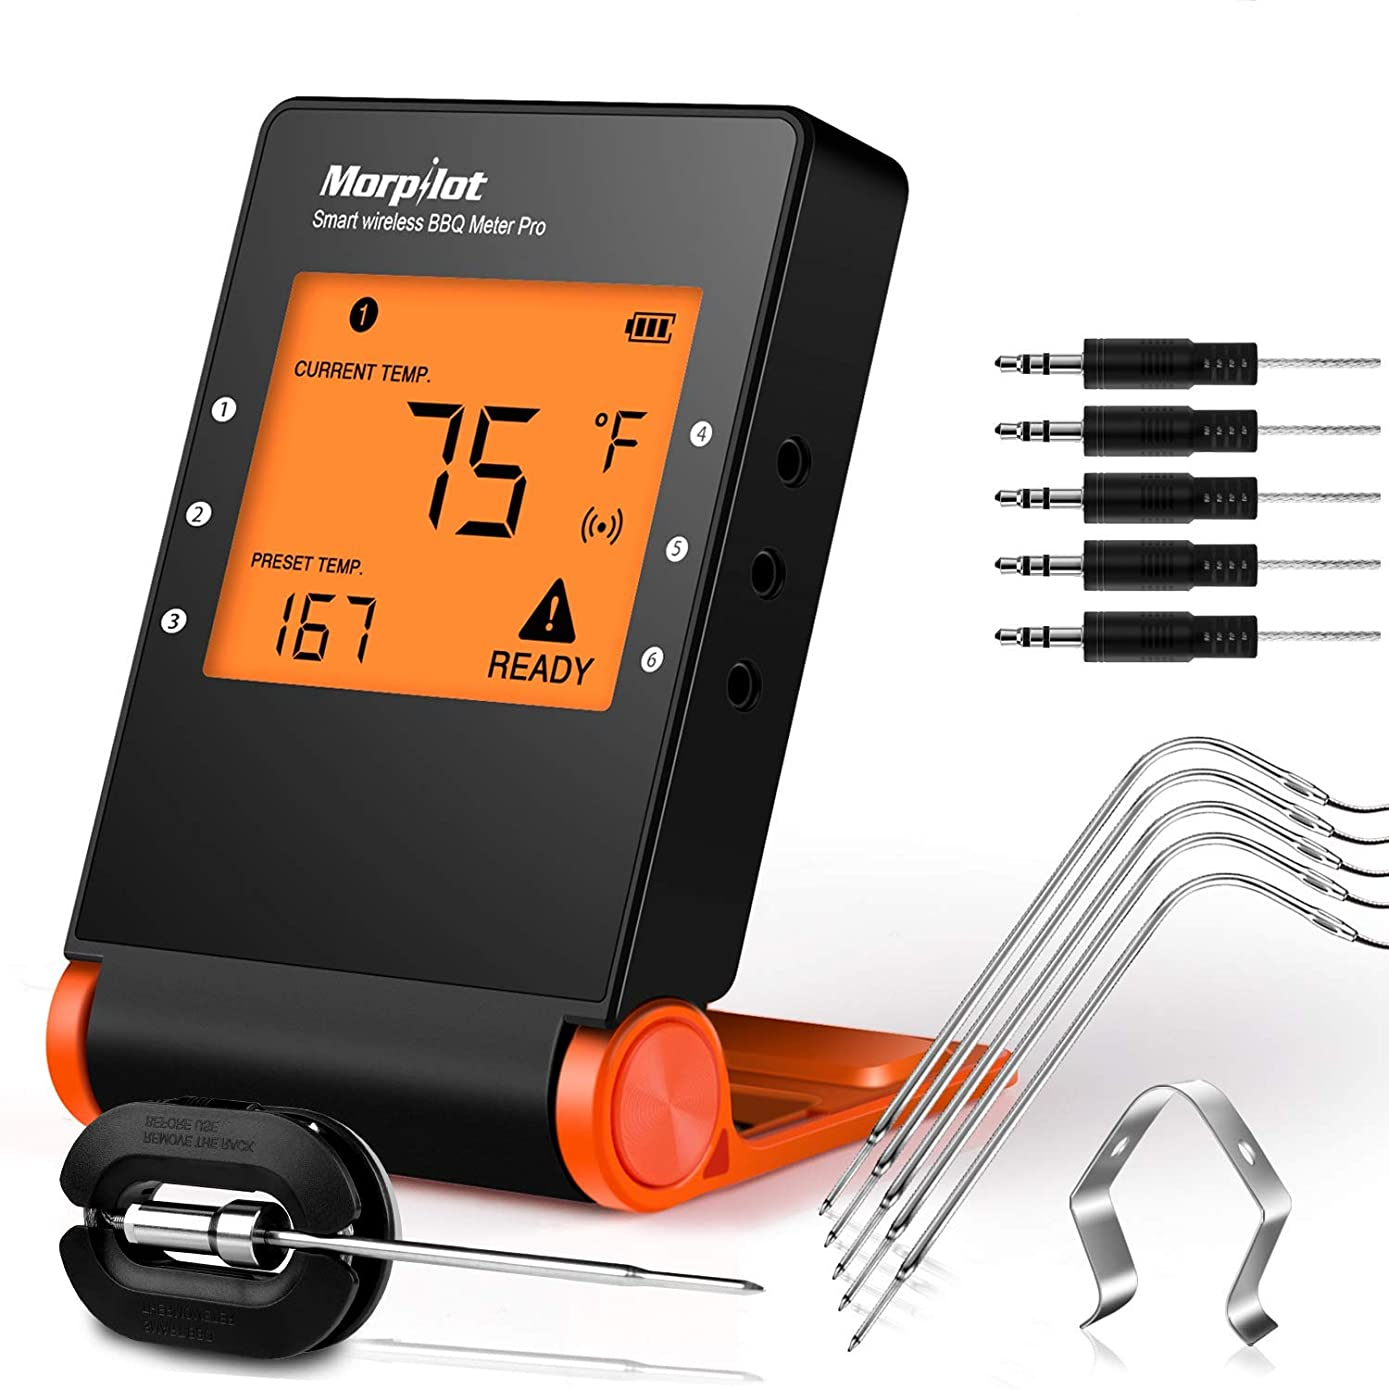 Wireless BBQ Thermometer, Morpilot Bluetooth Digital Meat Thermometer, Smart Grill Thermometer Smoker Thermometer with 6 Stainless Steel Probes, for Cooking Smoker Kitchen Oven